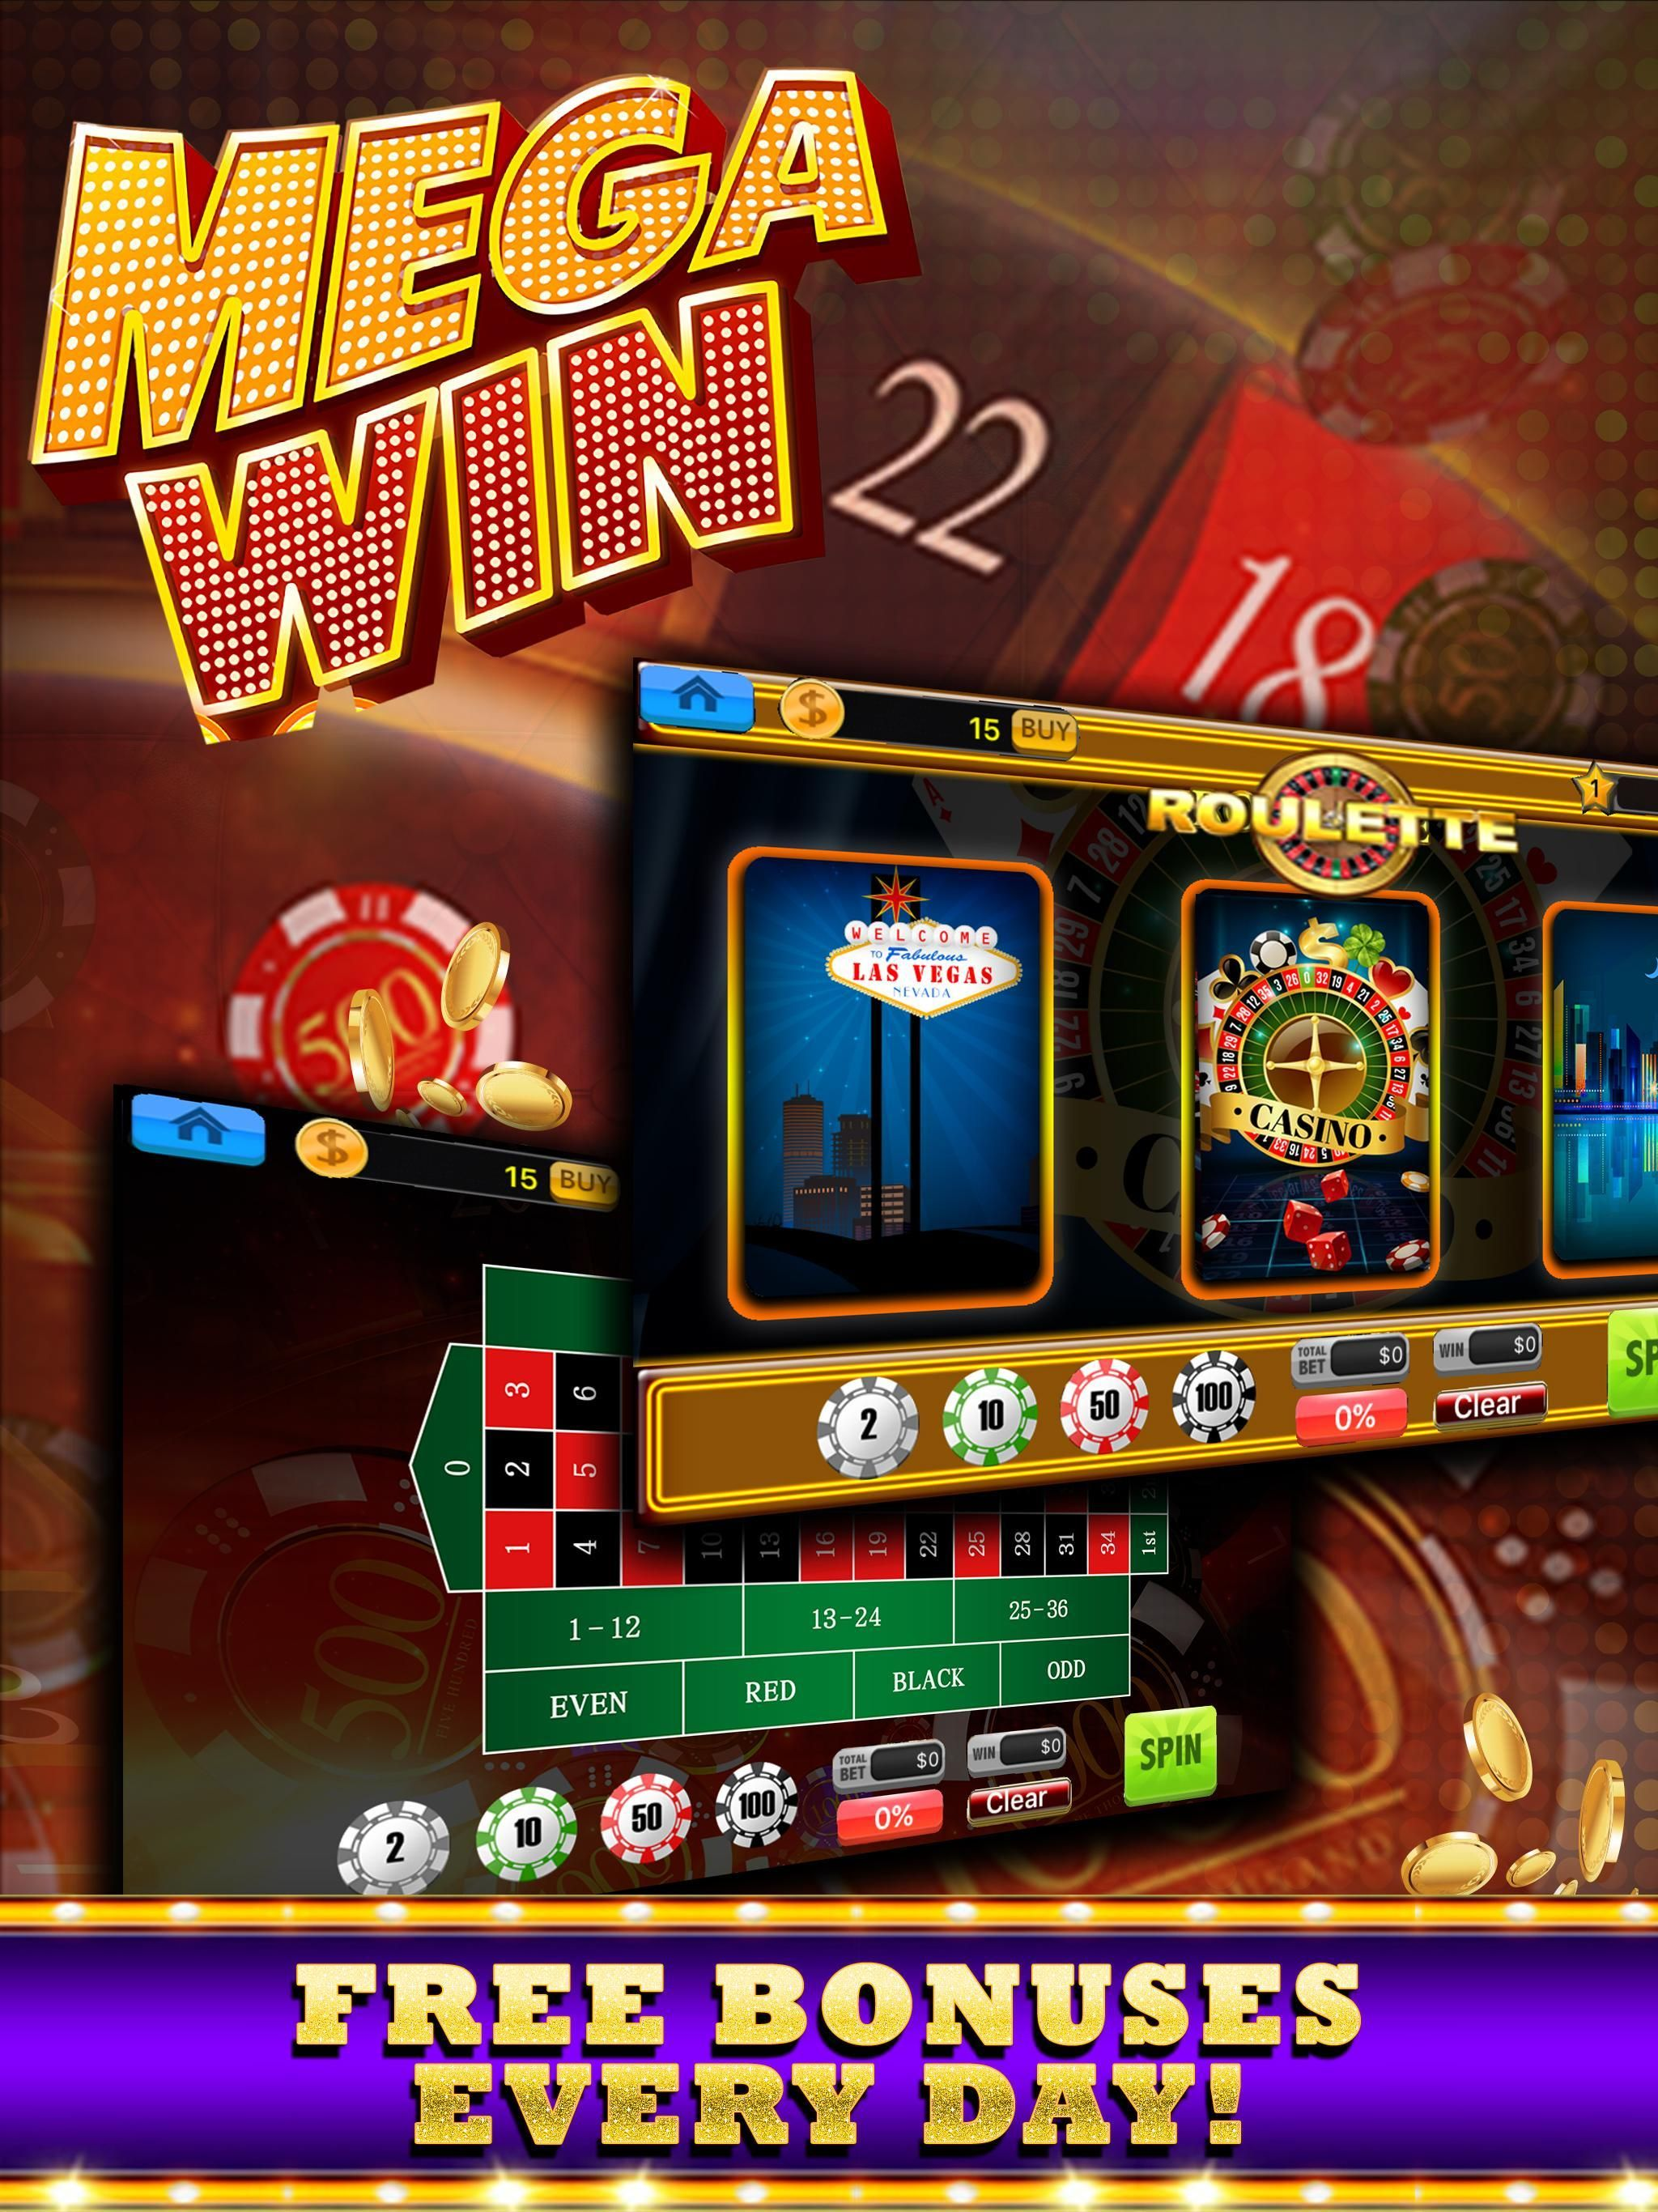 Victorious casino Brasil spins 585800